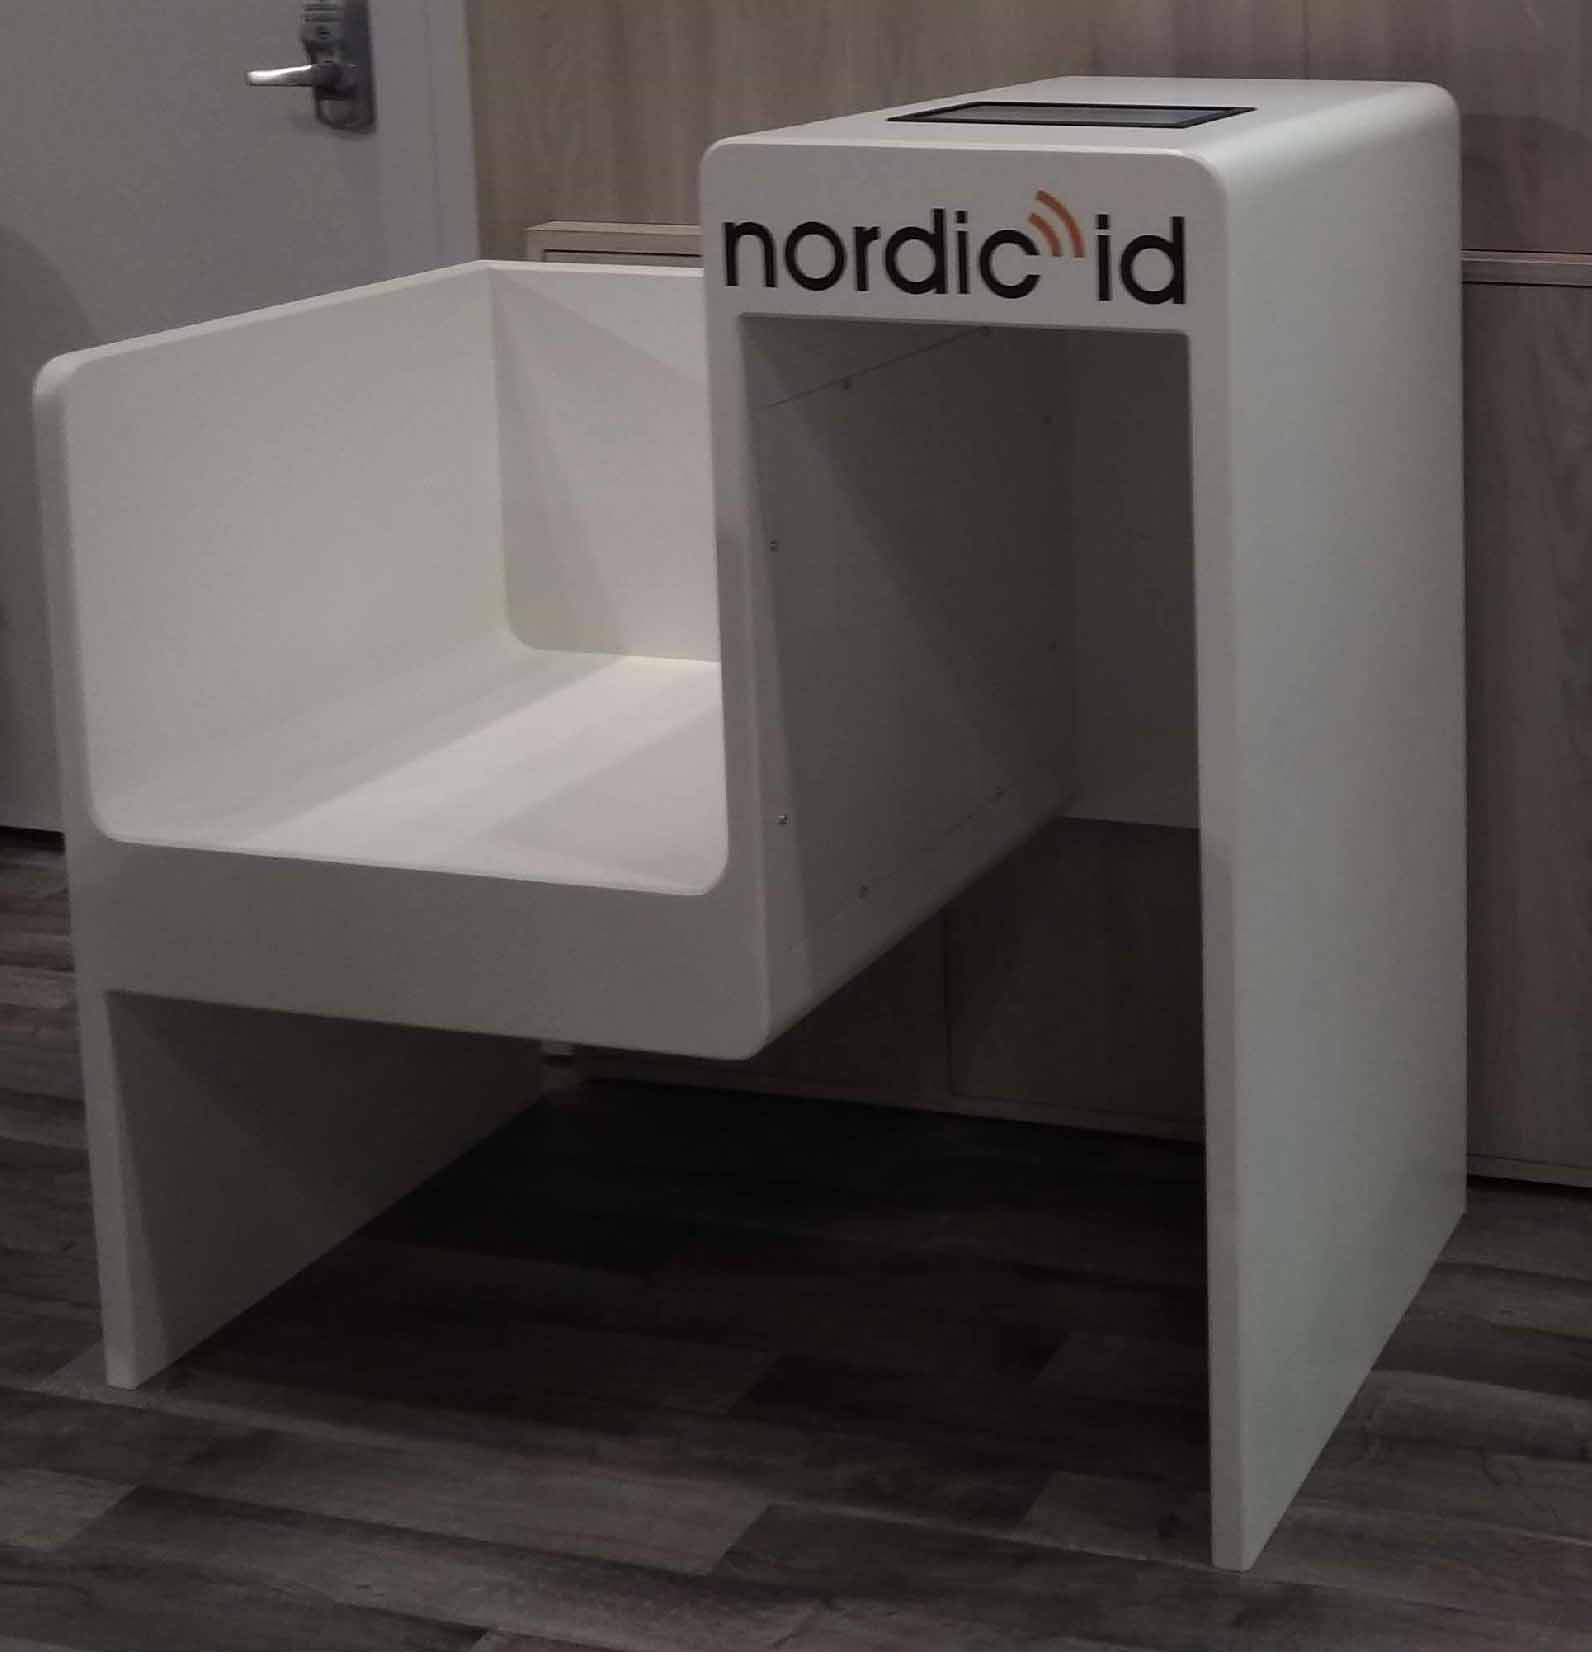 Release Nordic ID Self-checkout powered by RFID